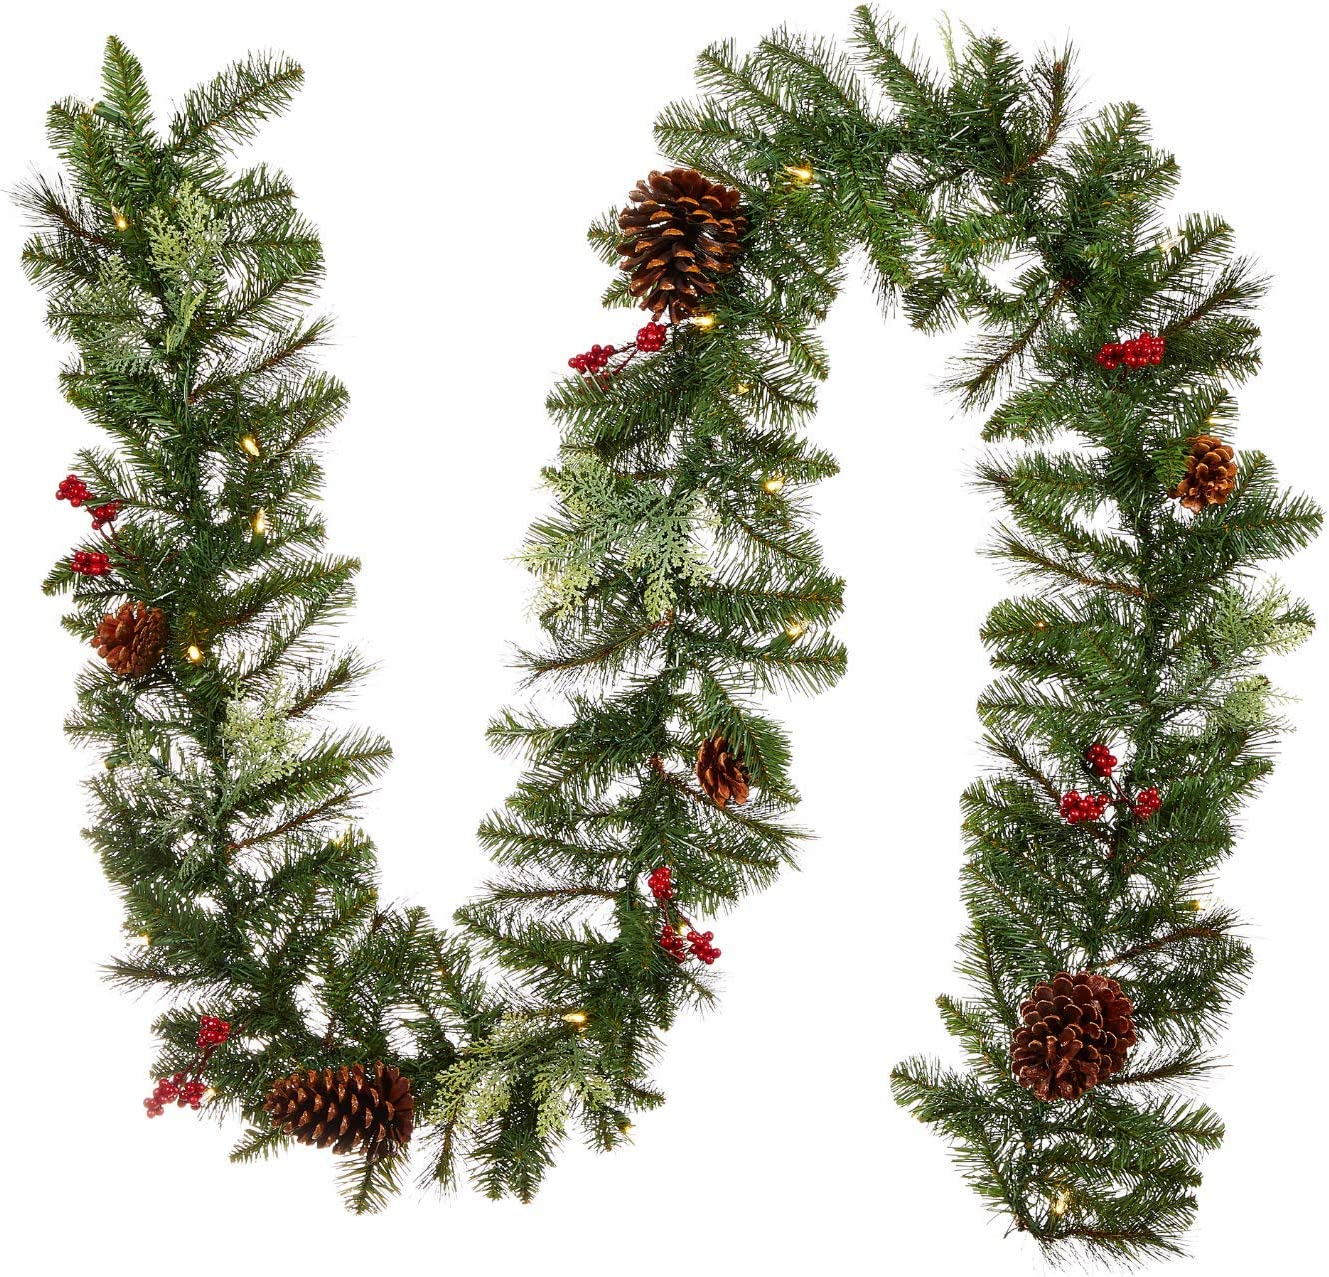 NOMA Pre-lit 9-Ft LED Berries Pinecones Christmas Sales for sale Garland with Raleigh Mall